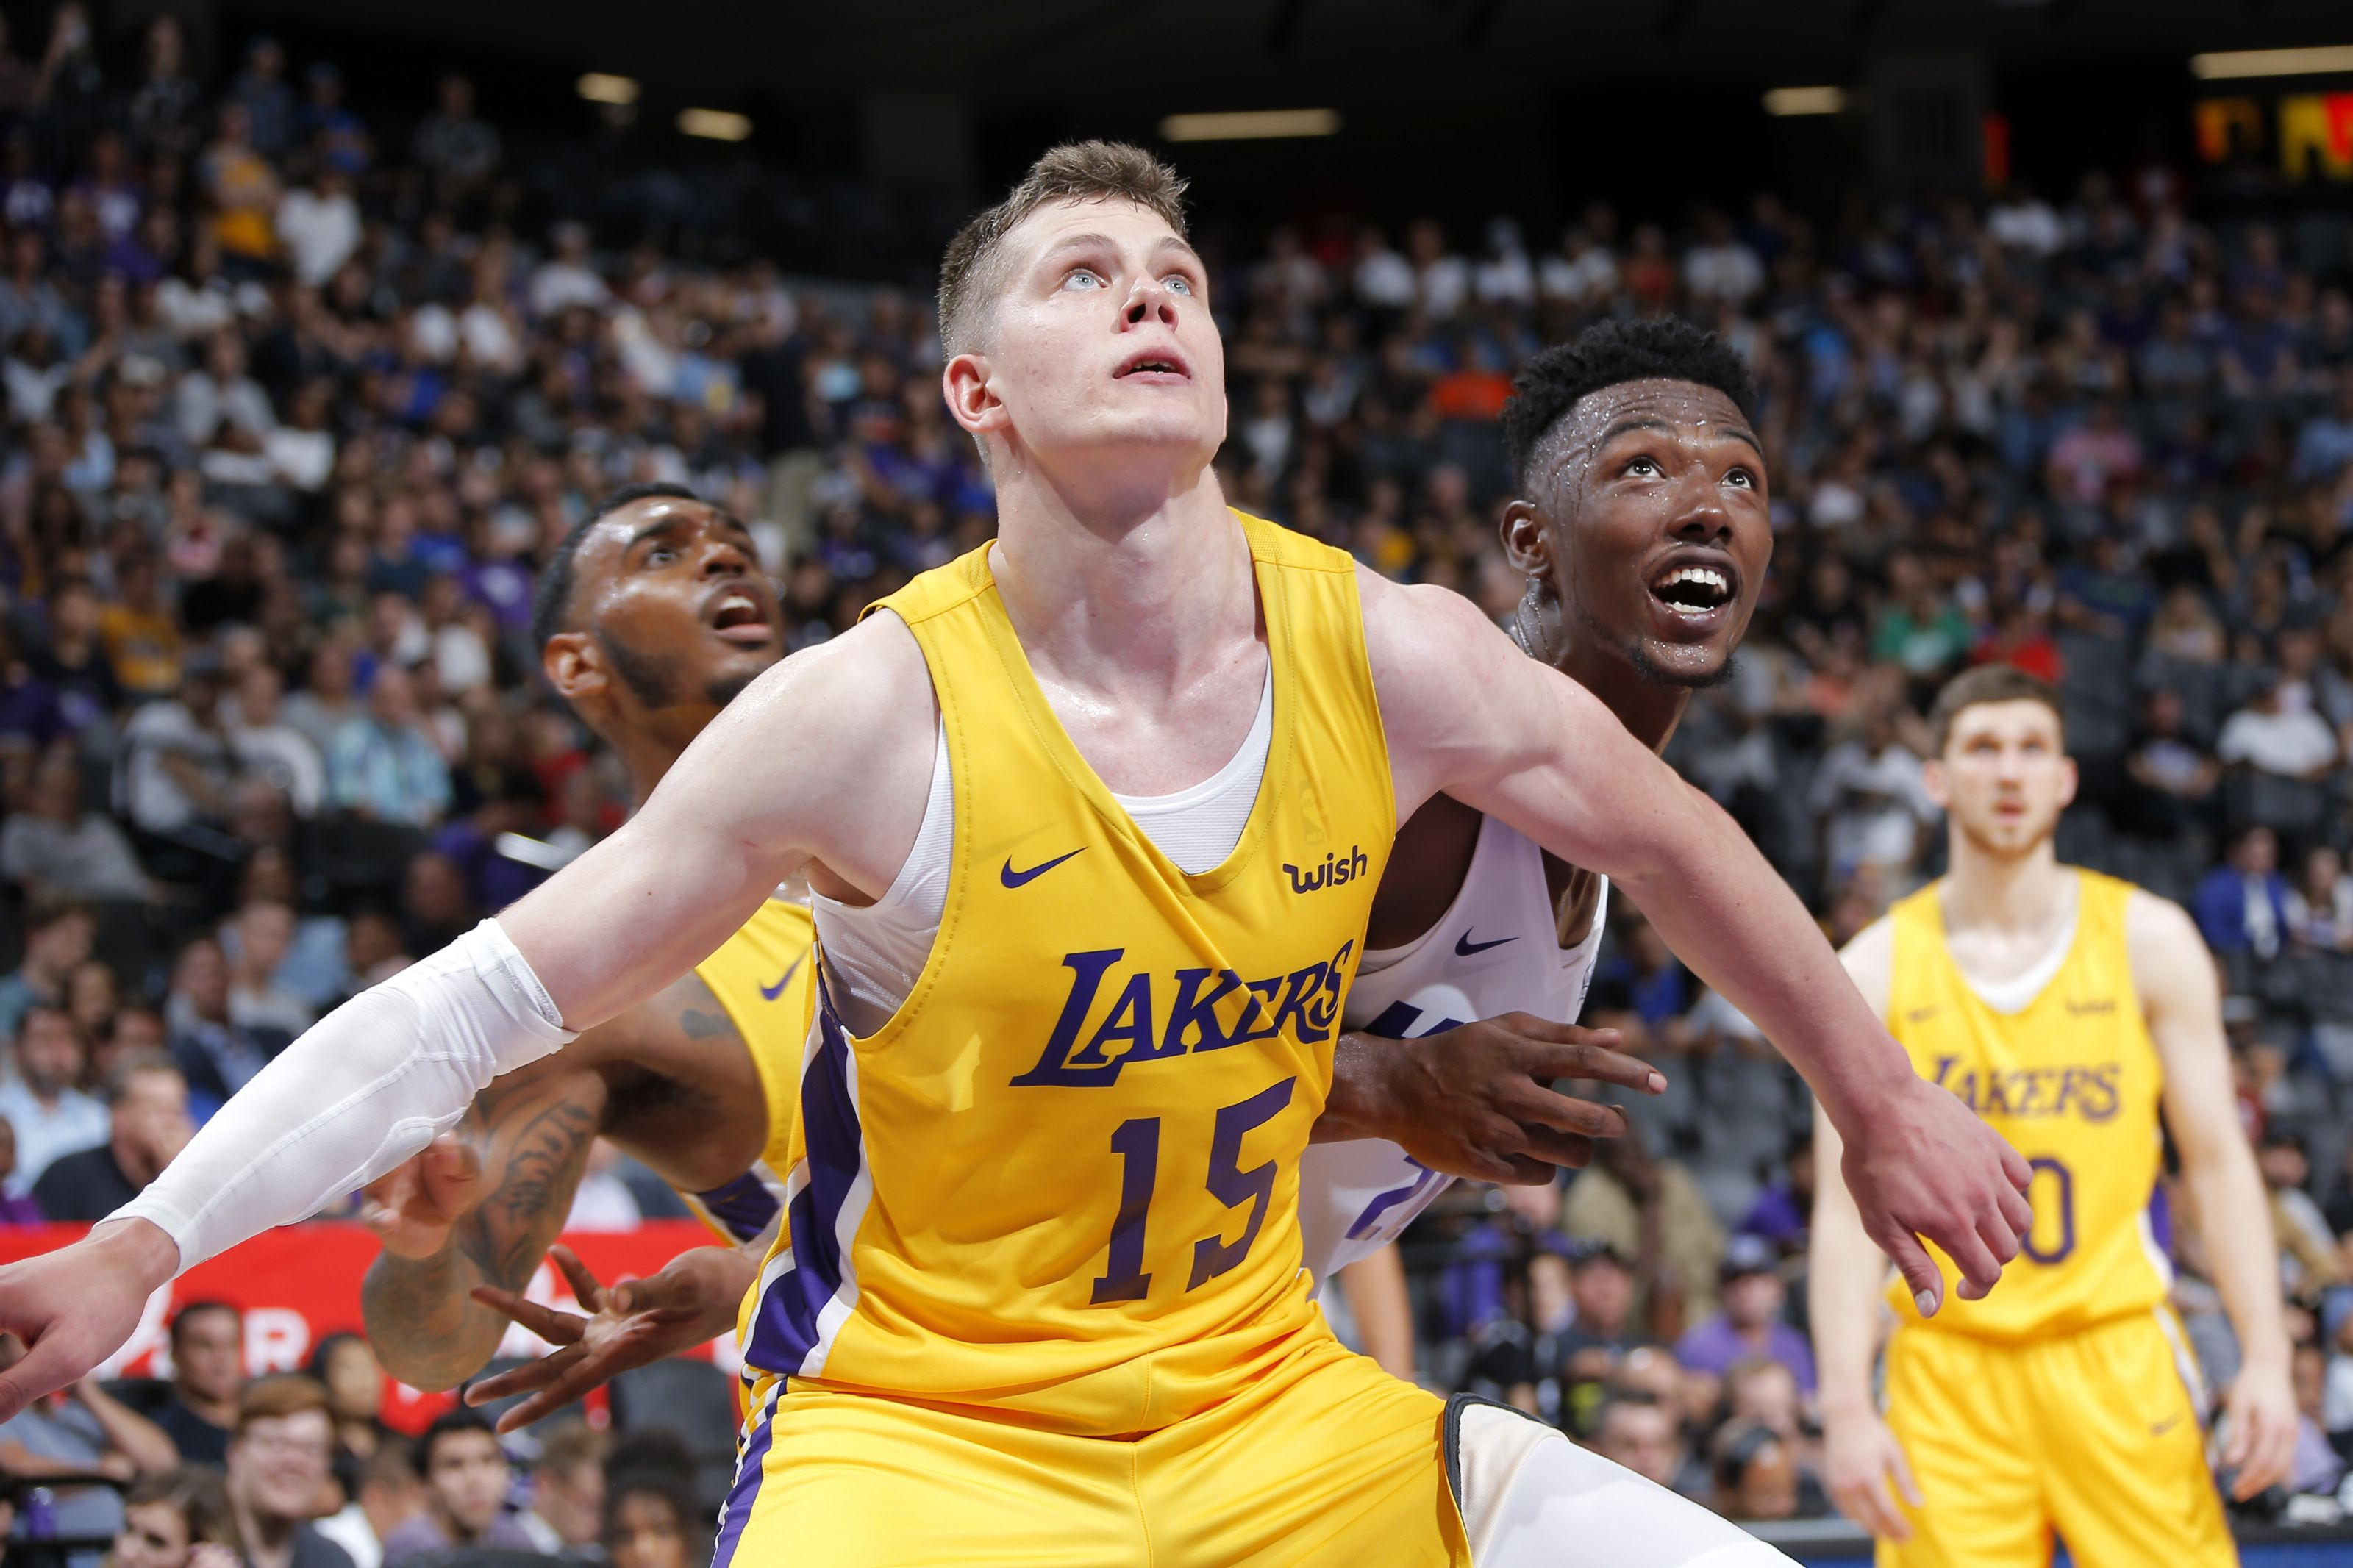 Moritz Wagner, Los Angeles Lakers vs Miami Heat at the Golden 1 Center